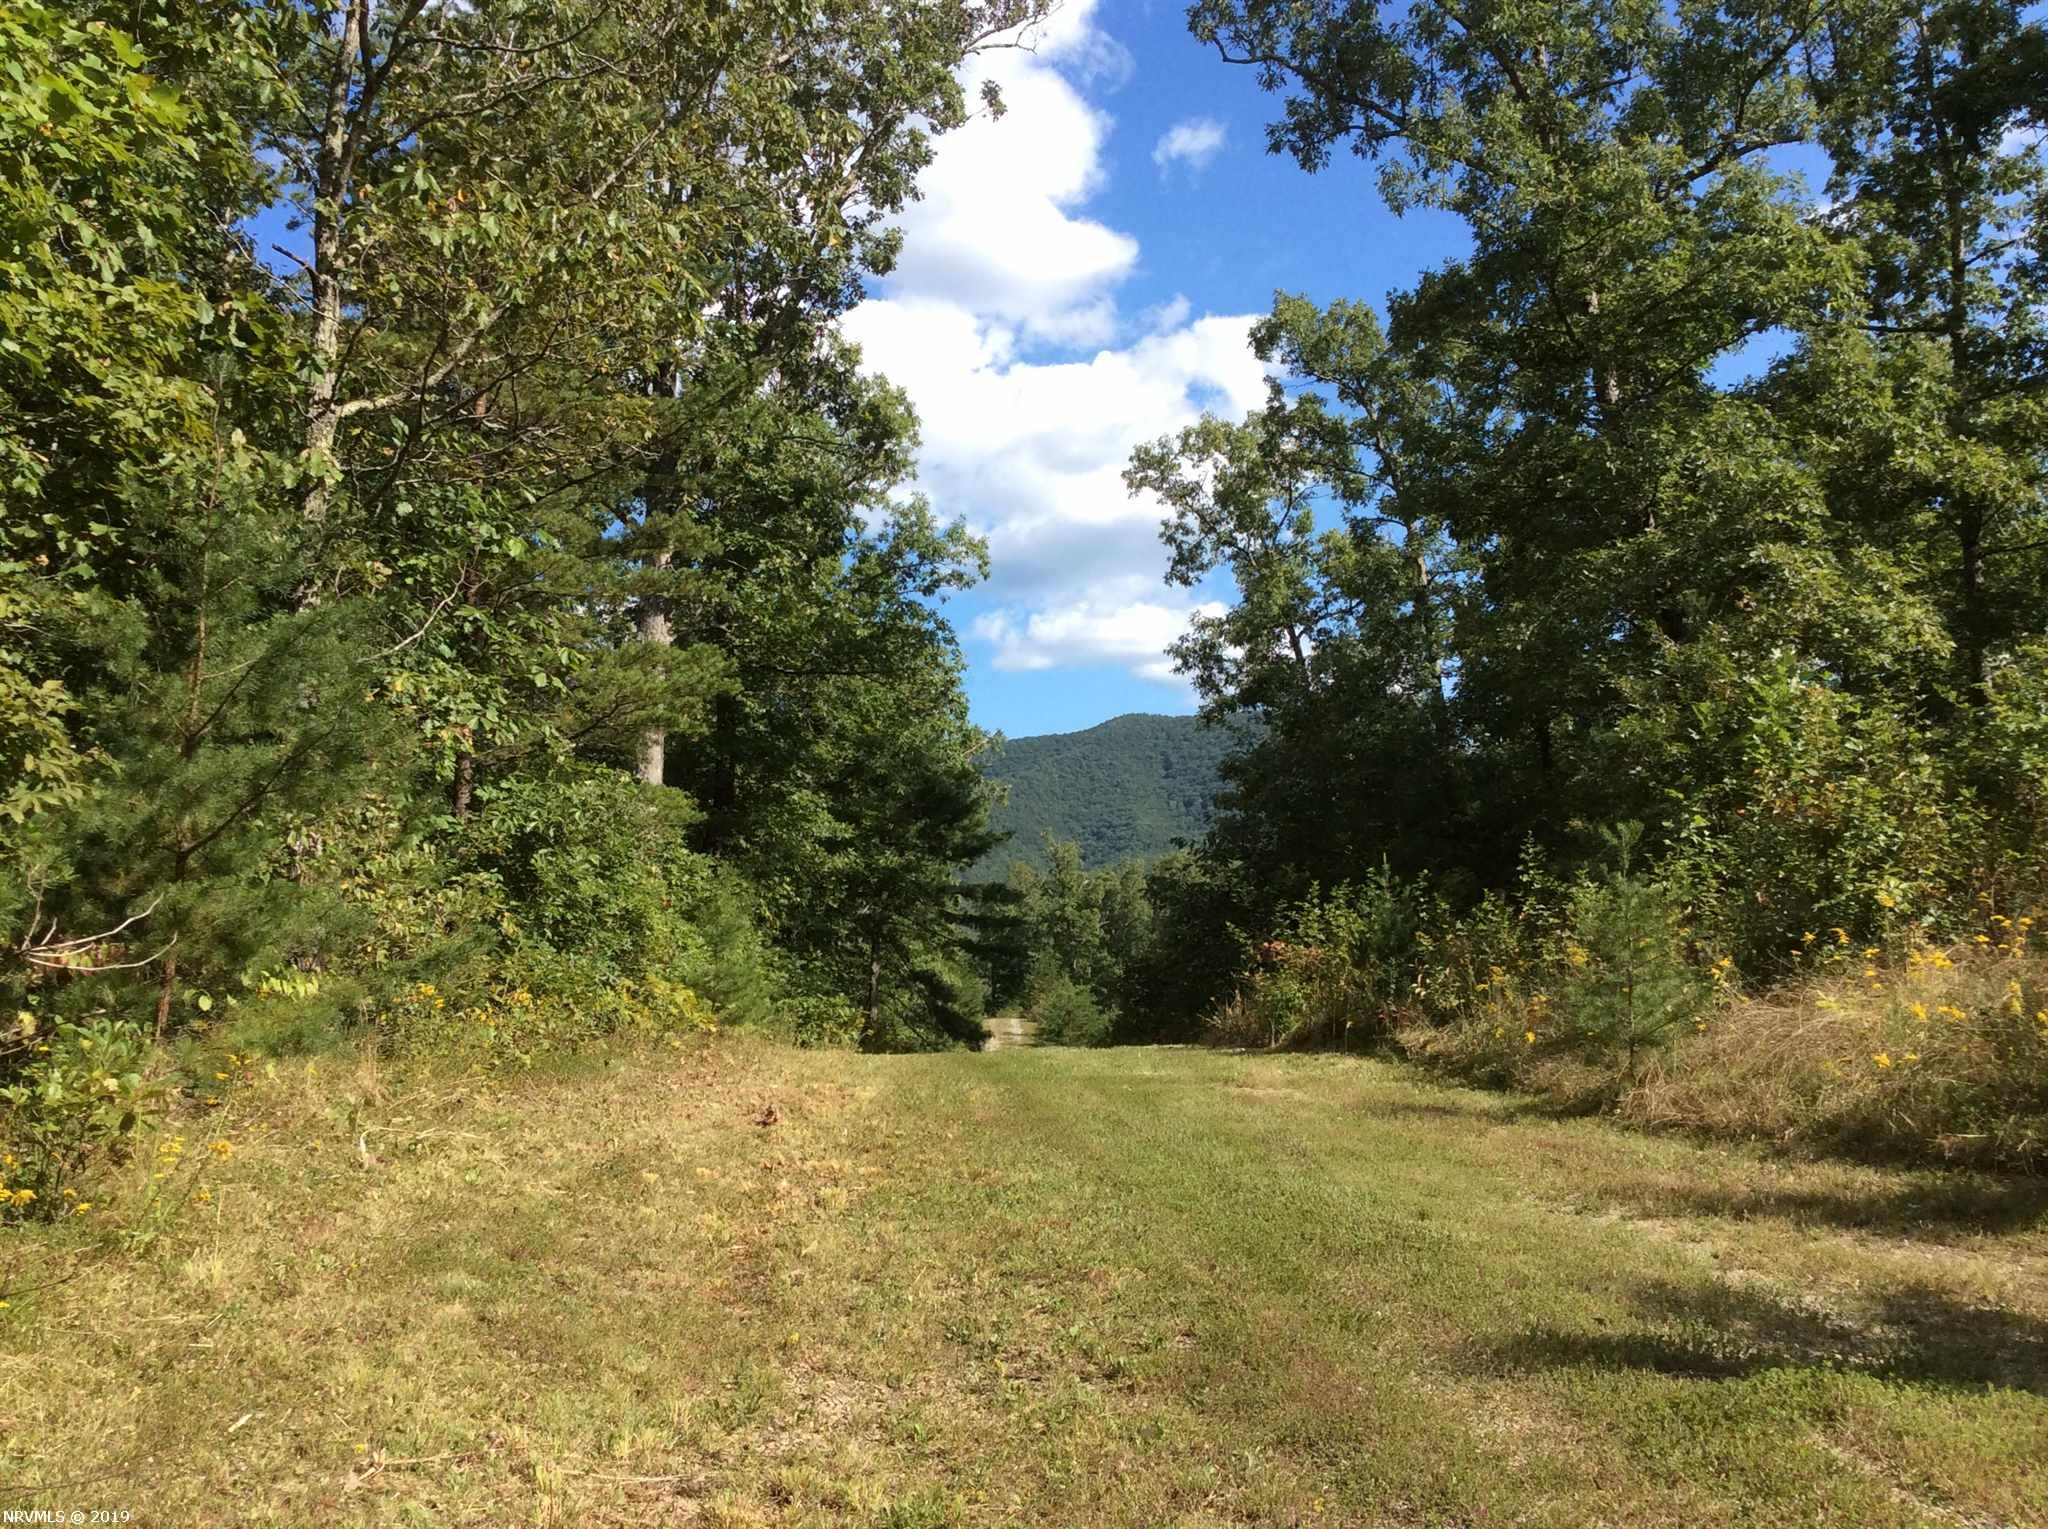 Live, play, hunt, hike your choice and much more on this private 34 acres. Great access road already in place. Enjoy owning that get away place just a few minutes off I-81 Ironto exit short drive to Salem, Roanoke, Christiansburg, Blacksburg. Build your dream home and live where you play.